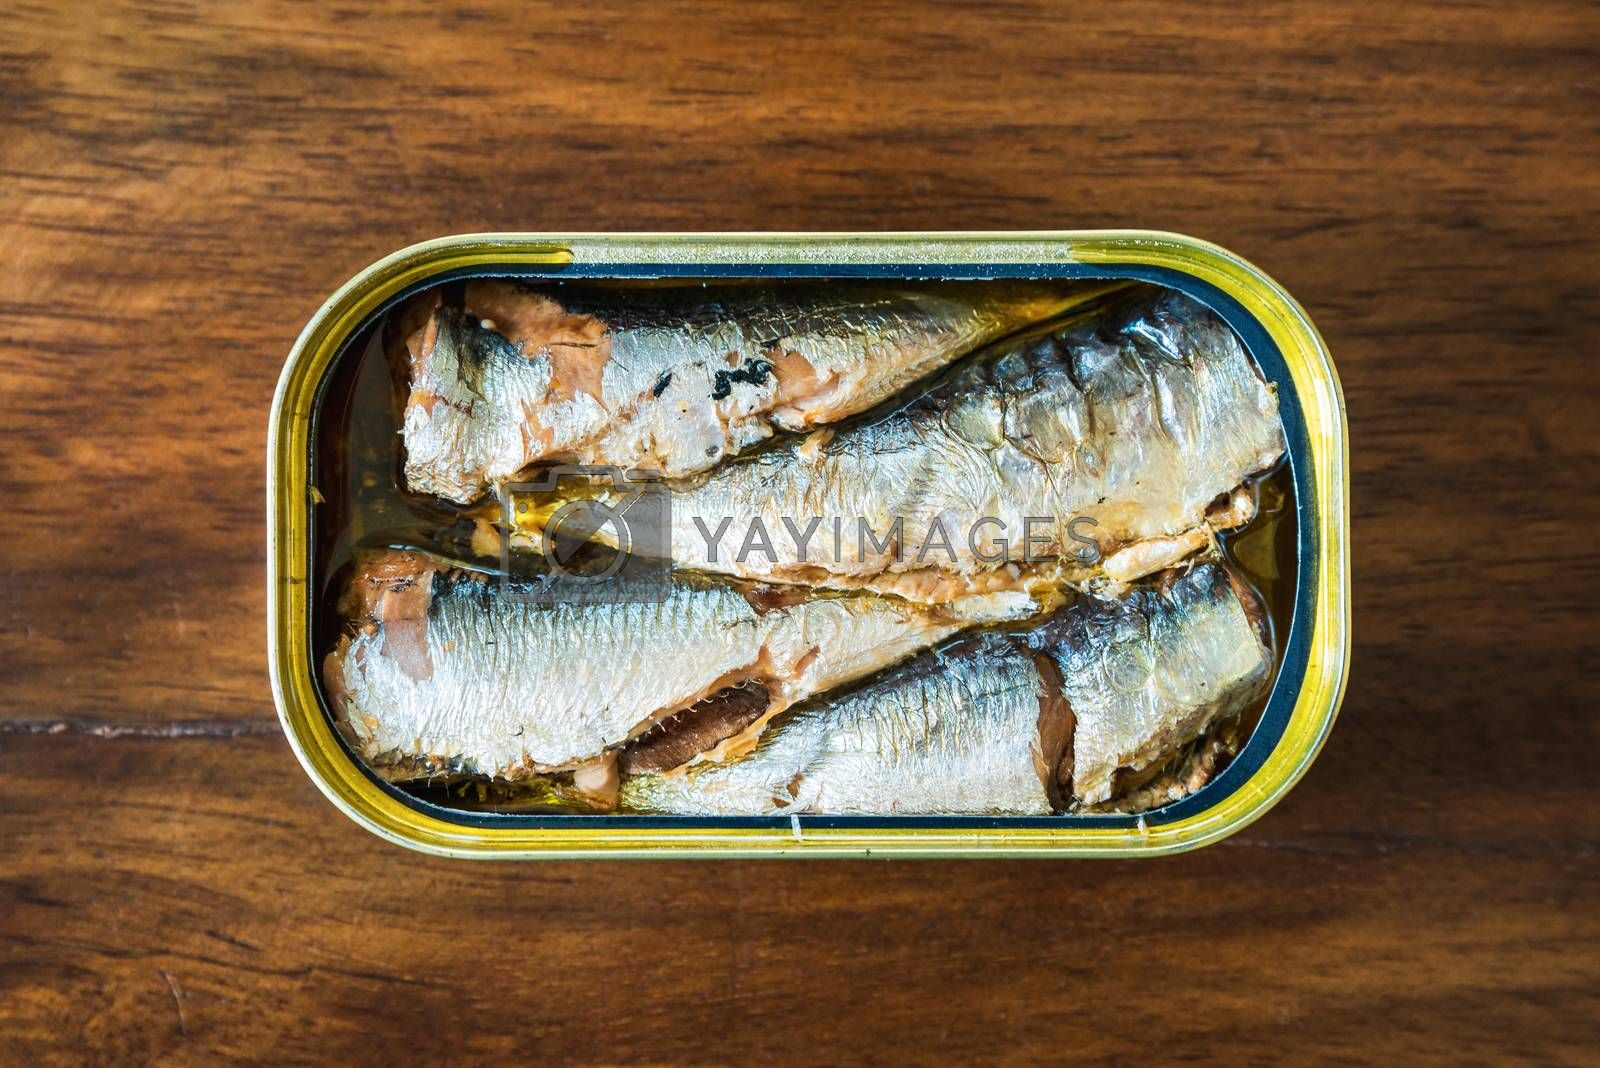 Canned sardines in olive oil on wood background